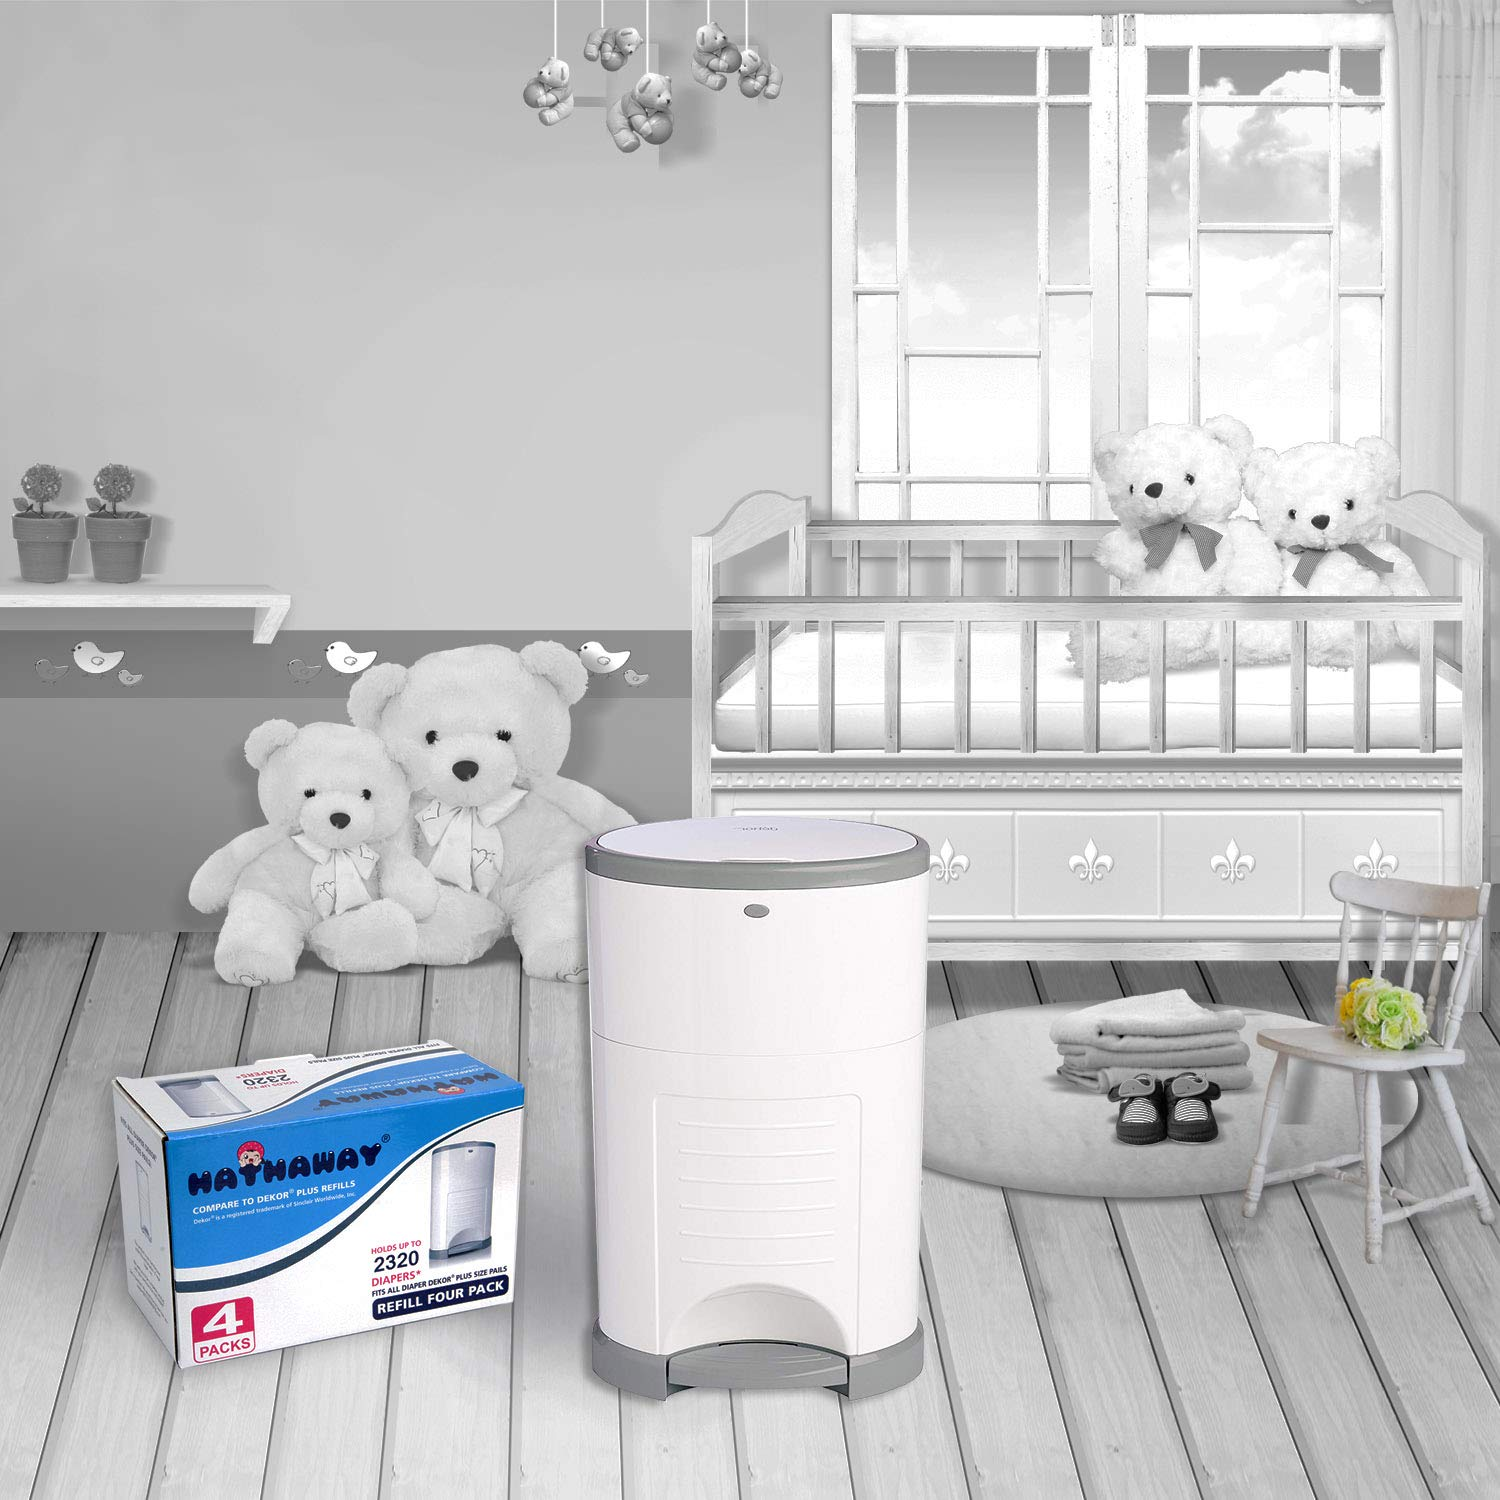 Holds up to 2320 Diapers Dekor Plus Refill Hathaway Dekor Plus Diaper Pail Refills- 4 Pack The Most Economical Dekor Diaper Pail Refills Save 30/% 4 Pack Bamboo Charcoal